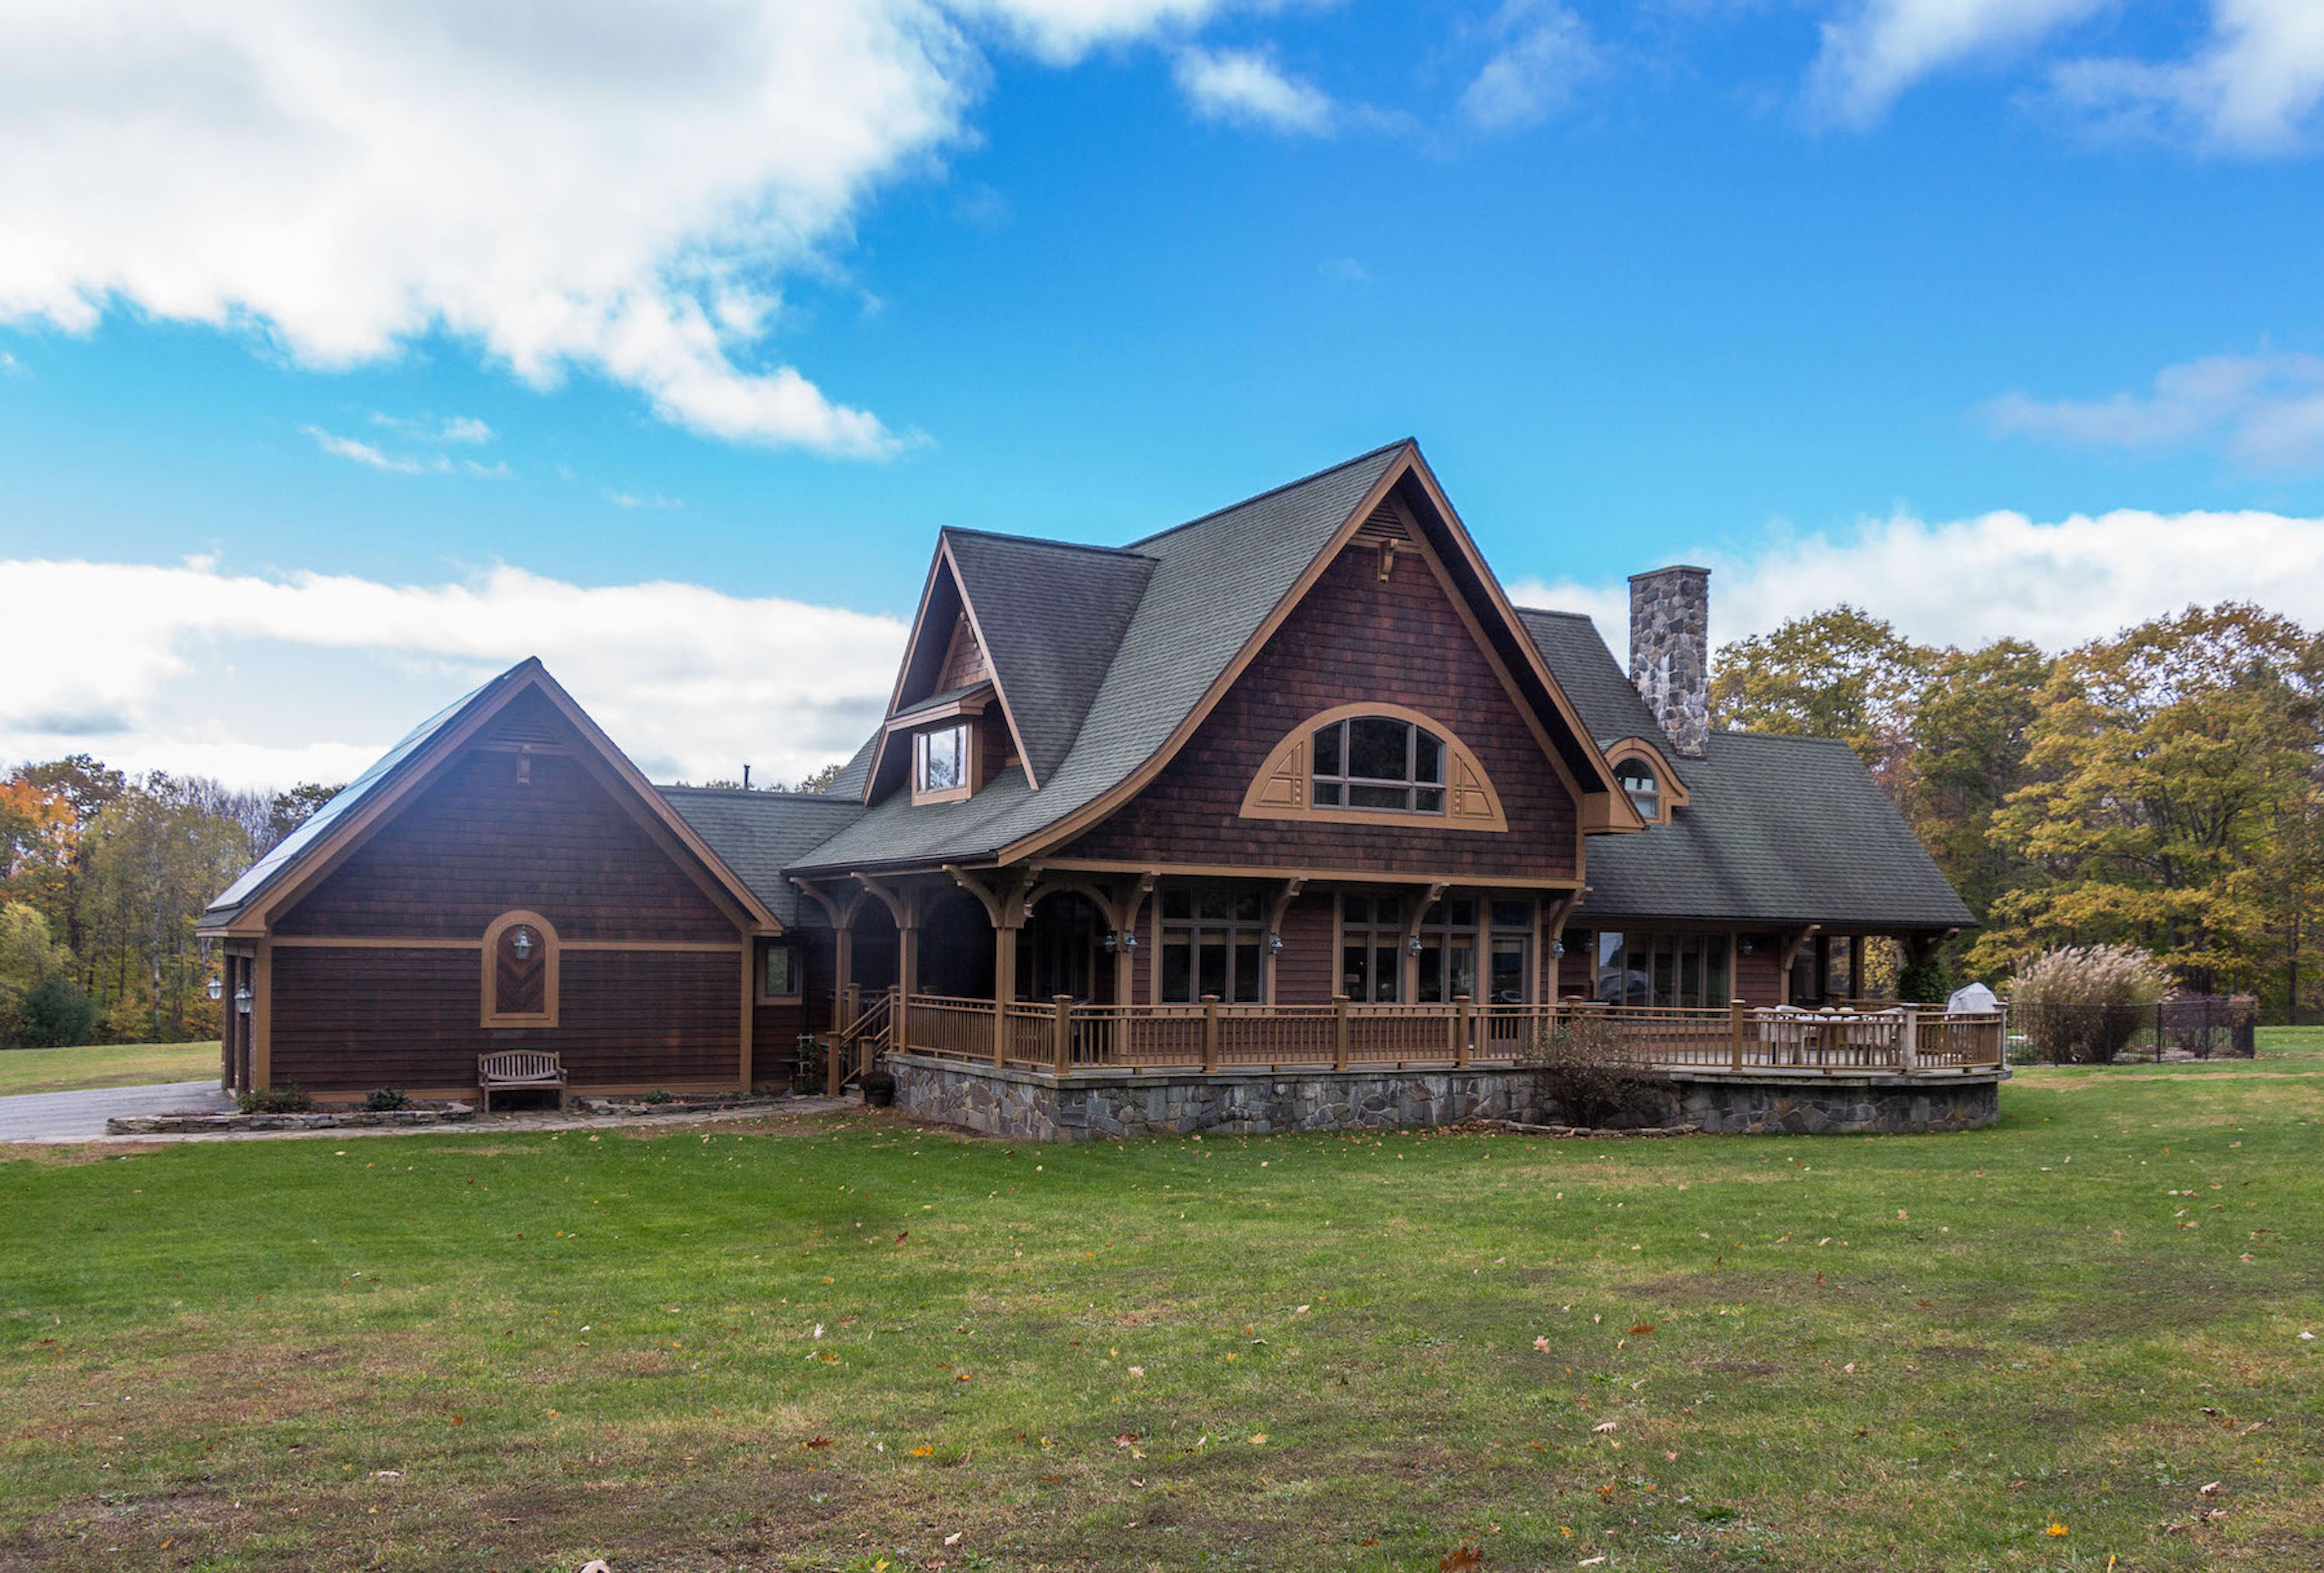 Single Family Home for sale in 1112 Whitesides Rd, Galway, NY ,12074